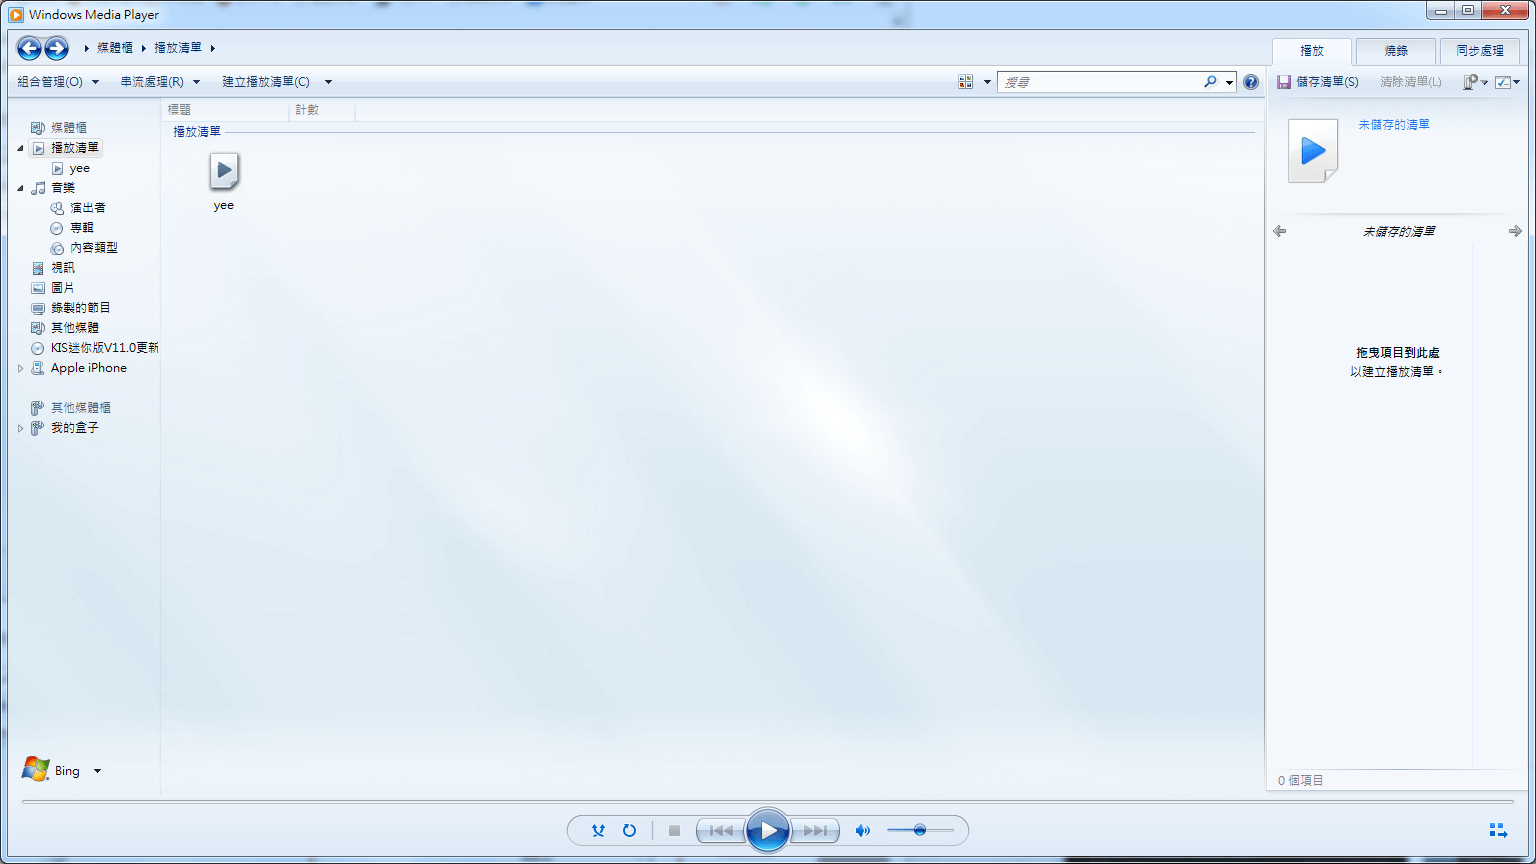 打開Windows Media Player